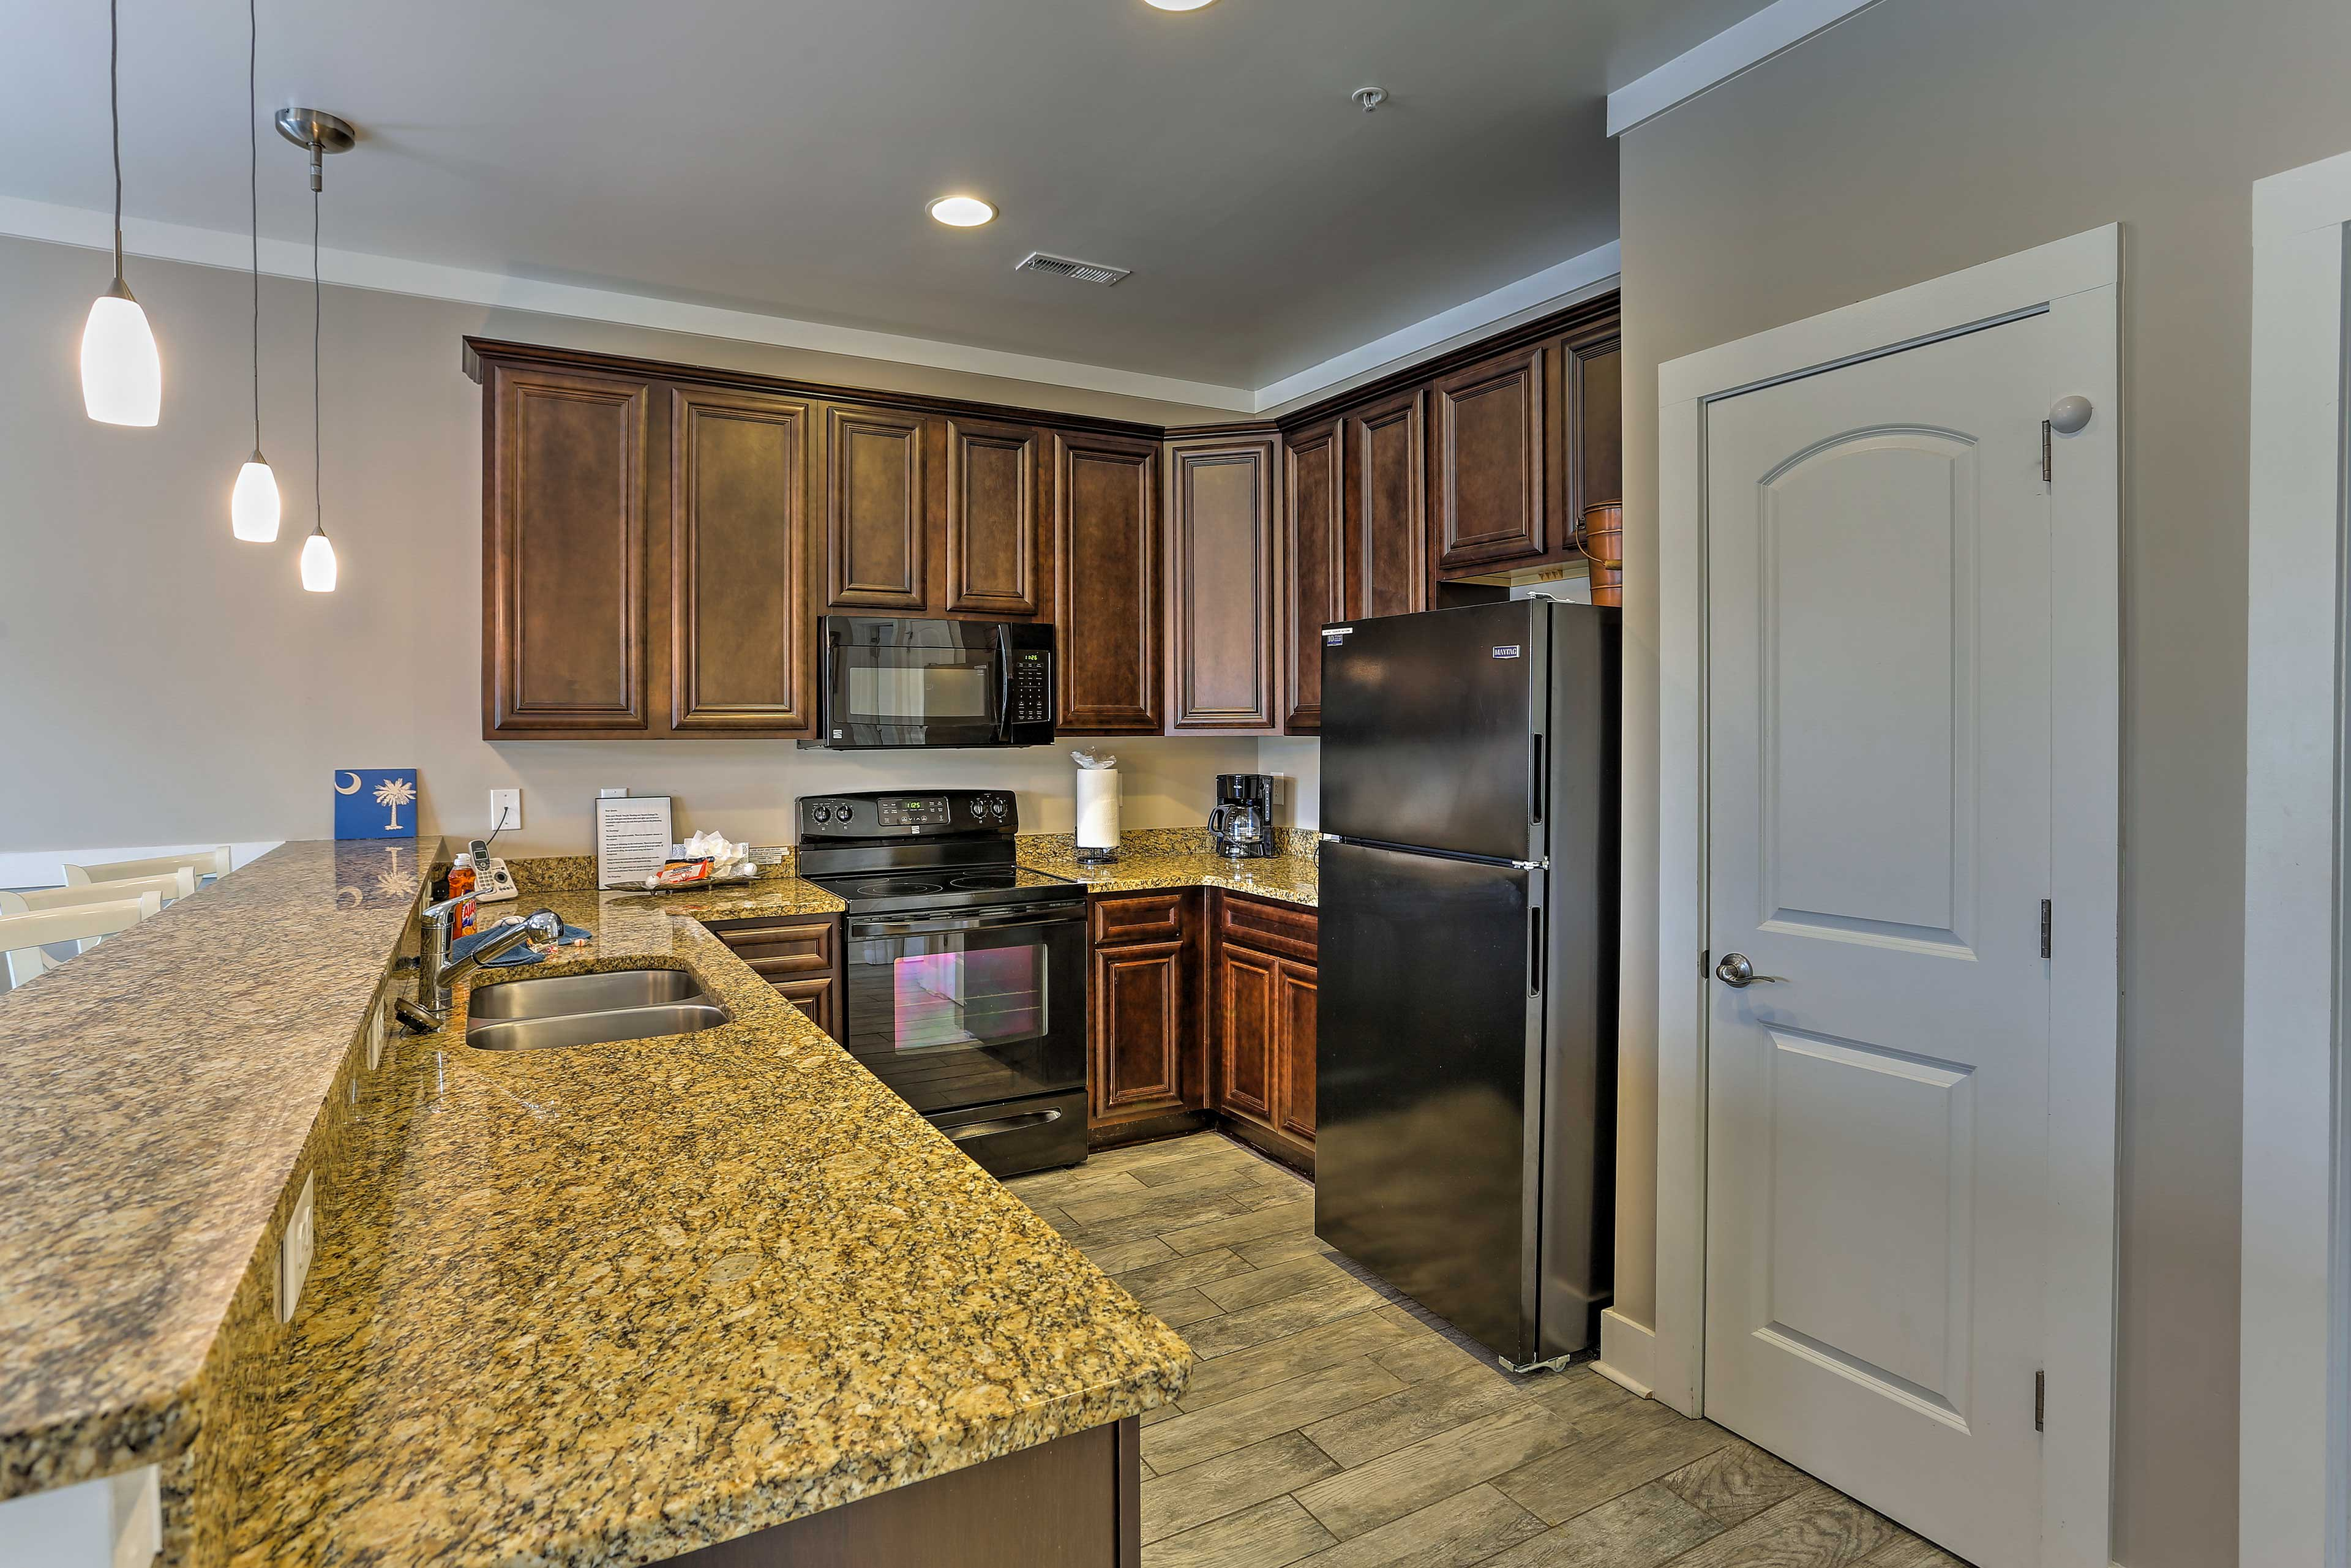 Ample granite counter tops make meal prepping a breeze.